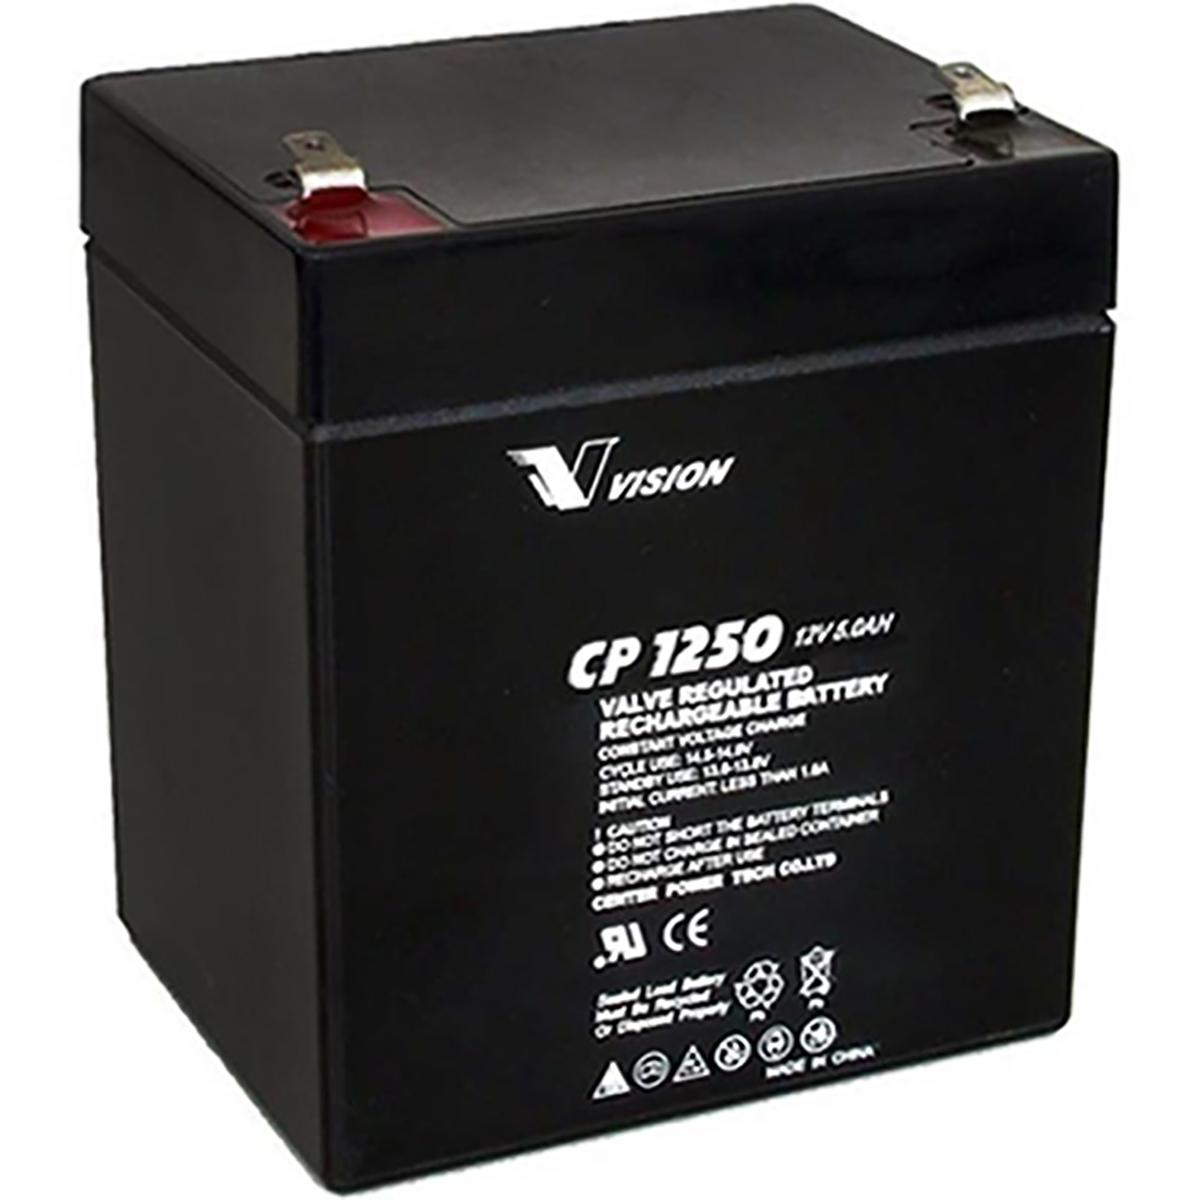 Power Patrol SLA1055 12V 5Ah Sealed Lead Acid Battery This is an AJC Brand Replacement